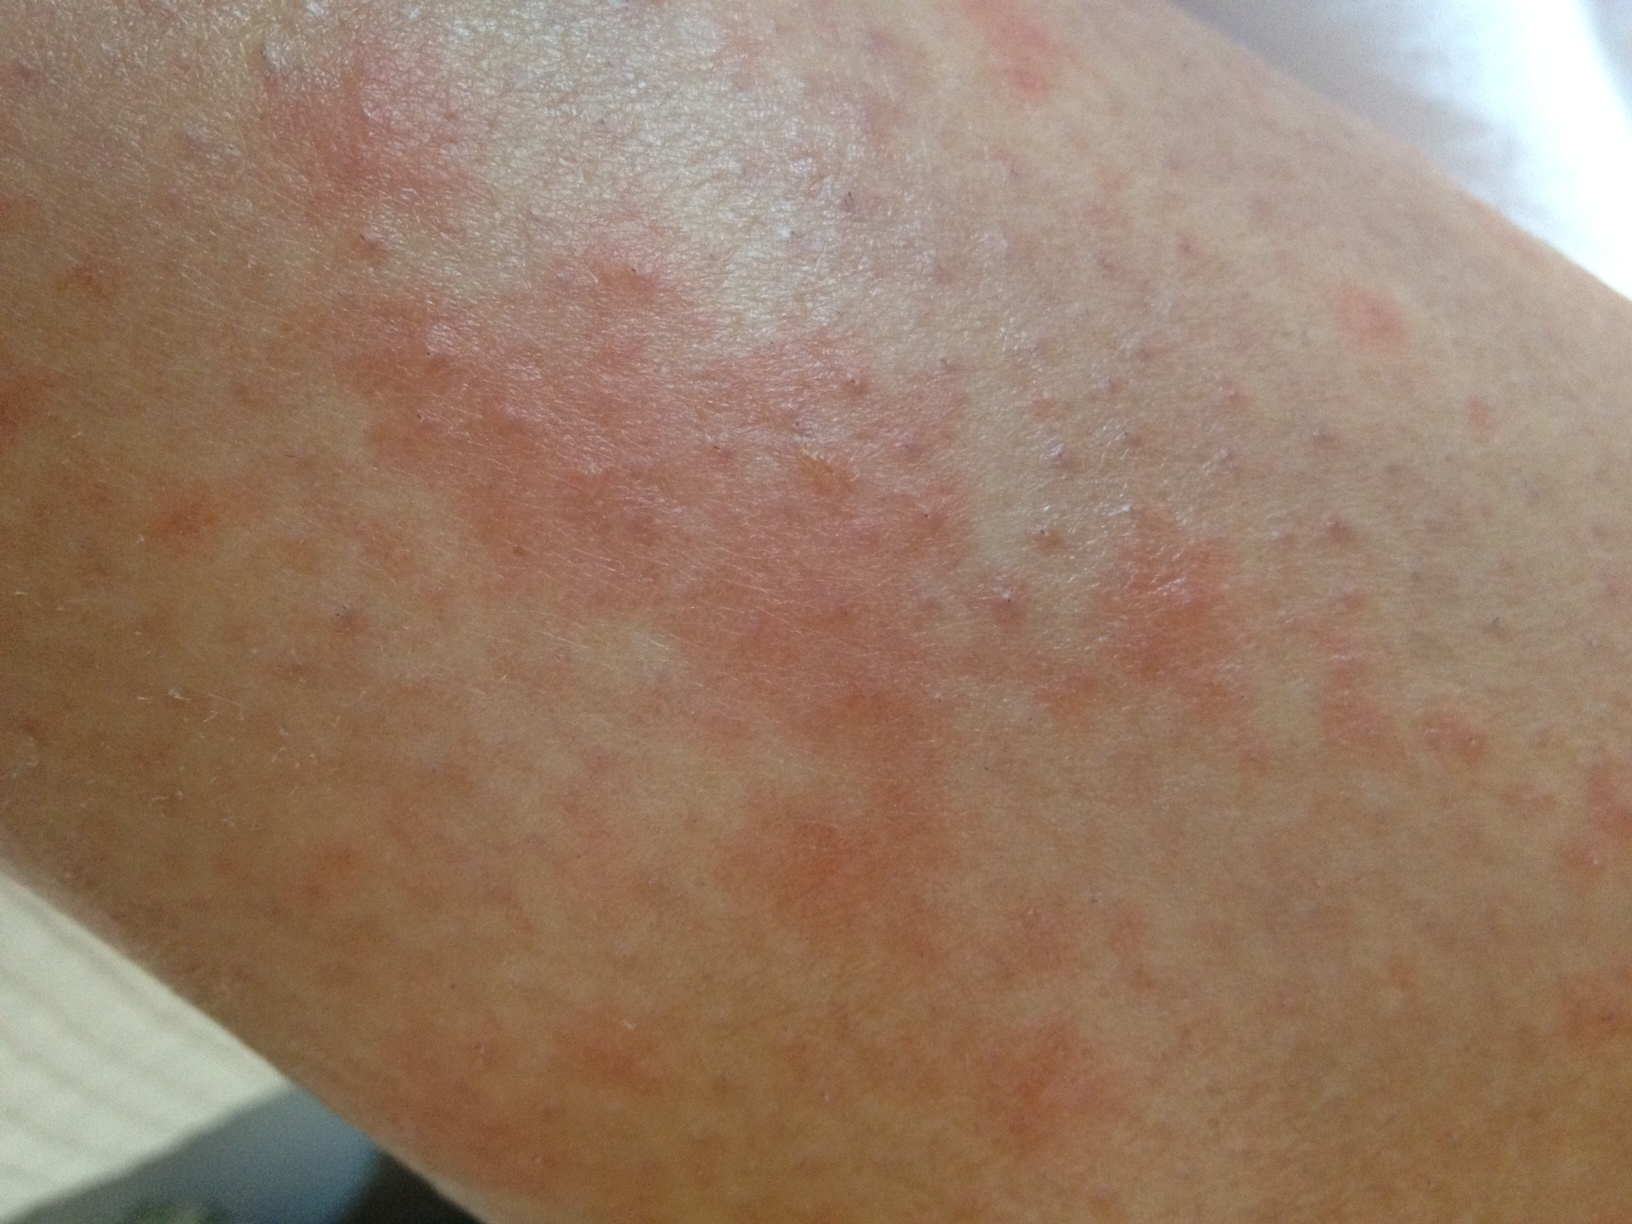 Leg Rash - Symptoms, Causes, Treatments - Healthgrades